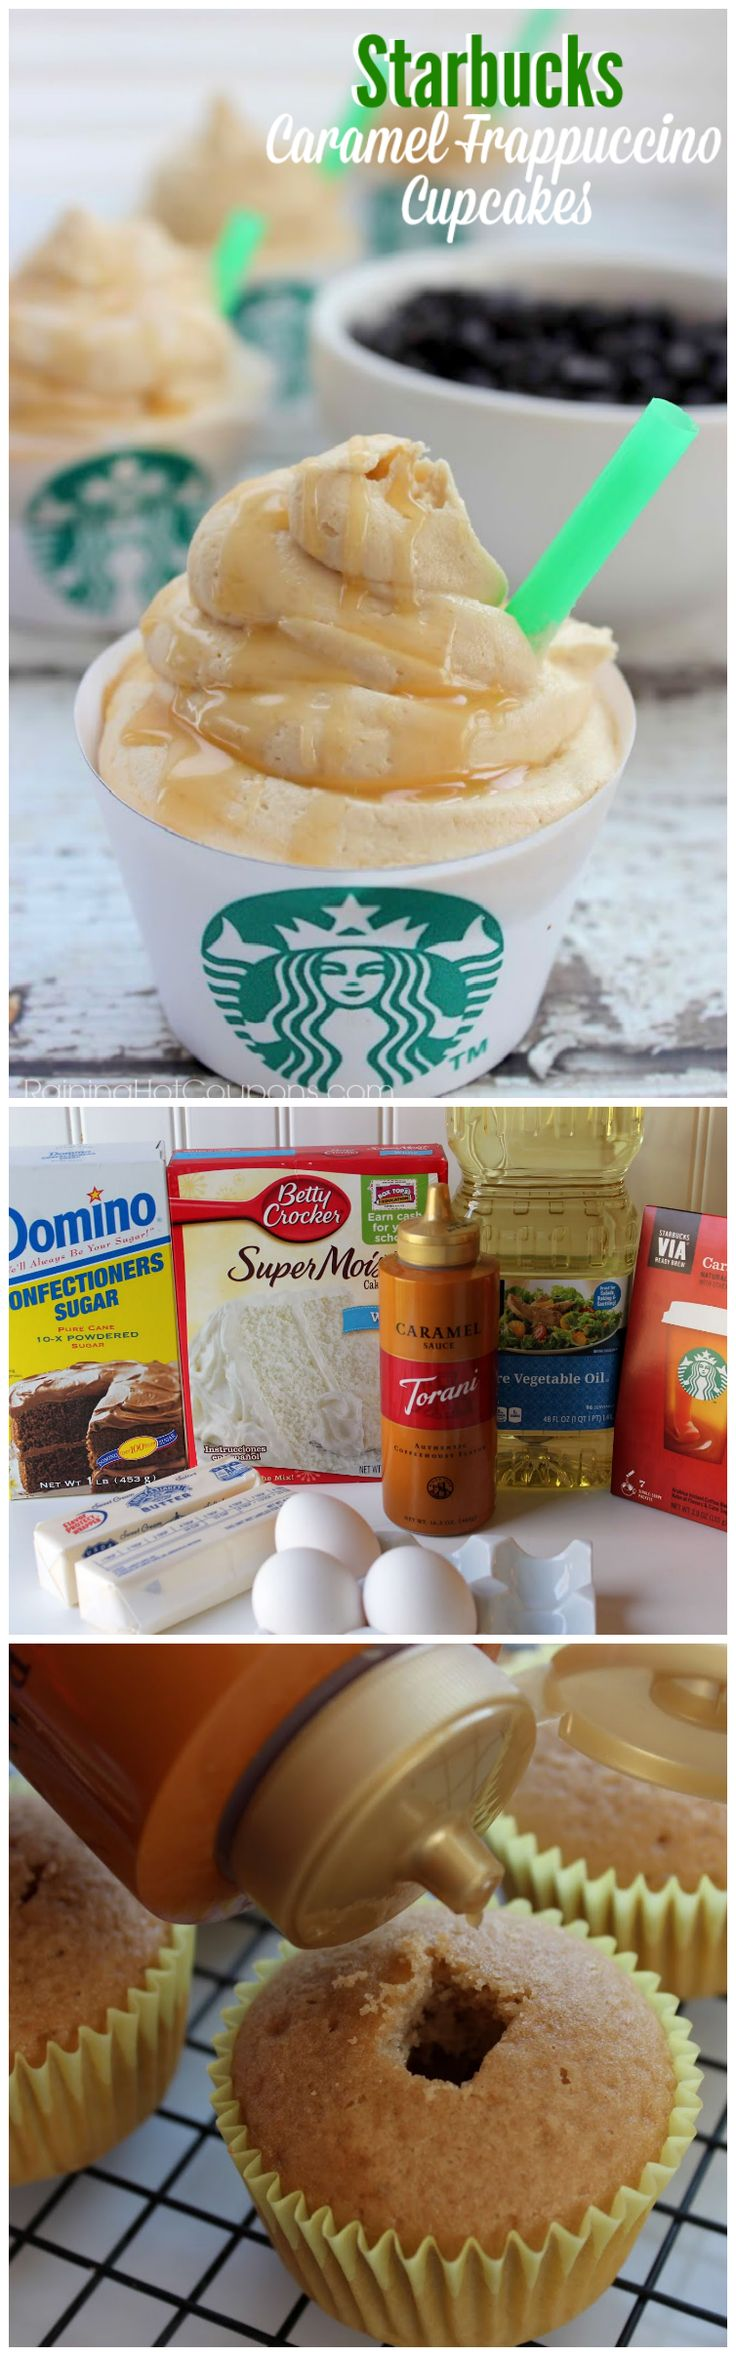 Starbucks Caramel Frappuccino Cupcakes - Raining Hot Coupons